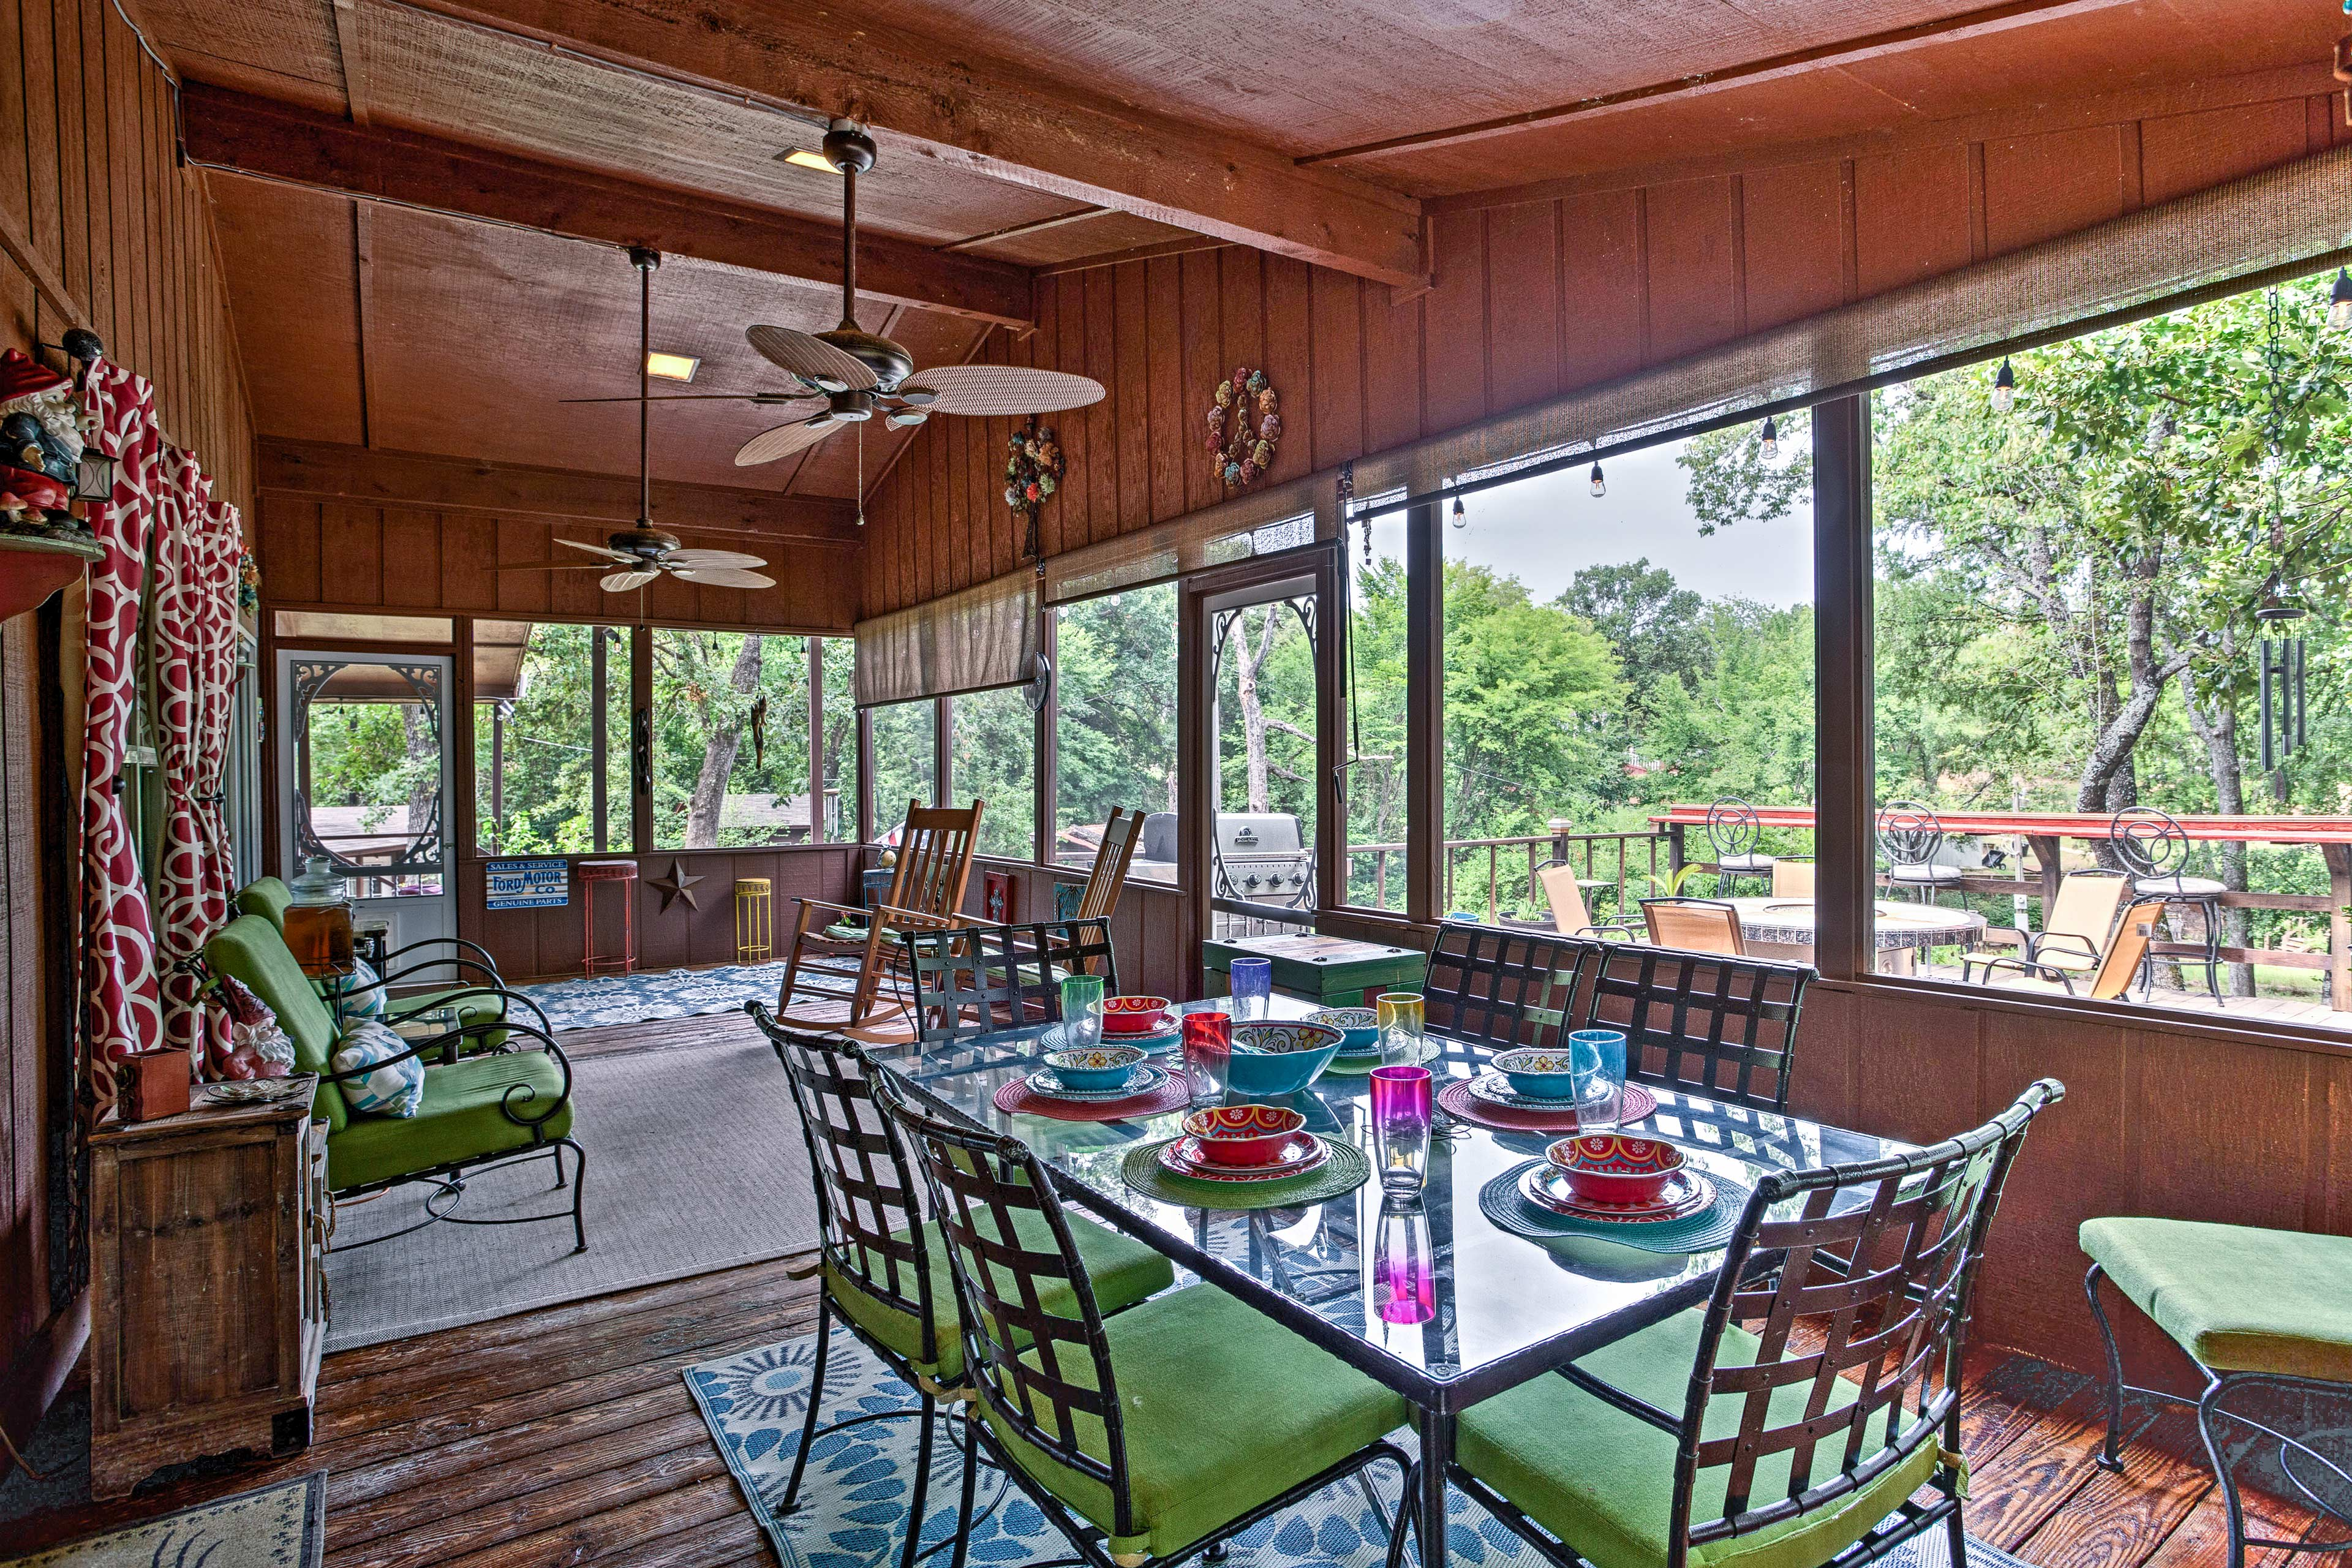 Enjoy the lush, picturesque property through the sunroom's many large windows.